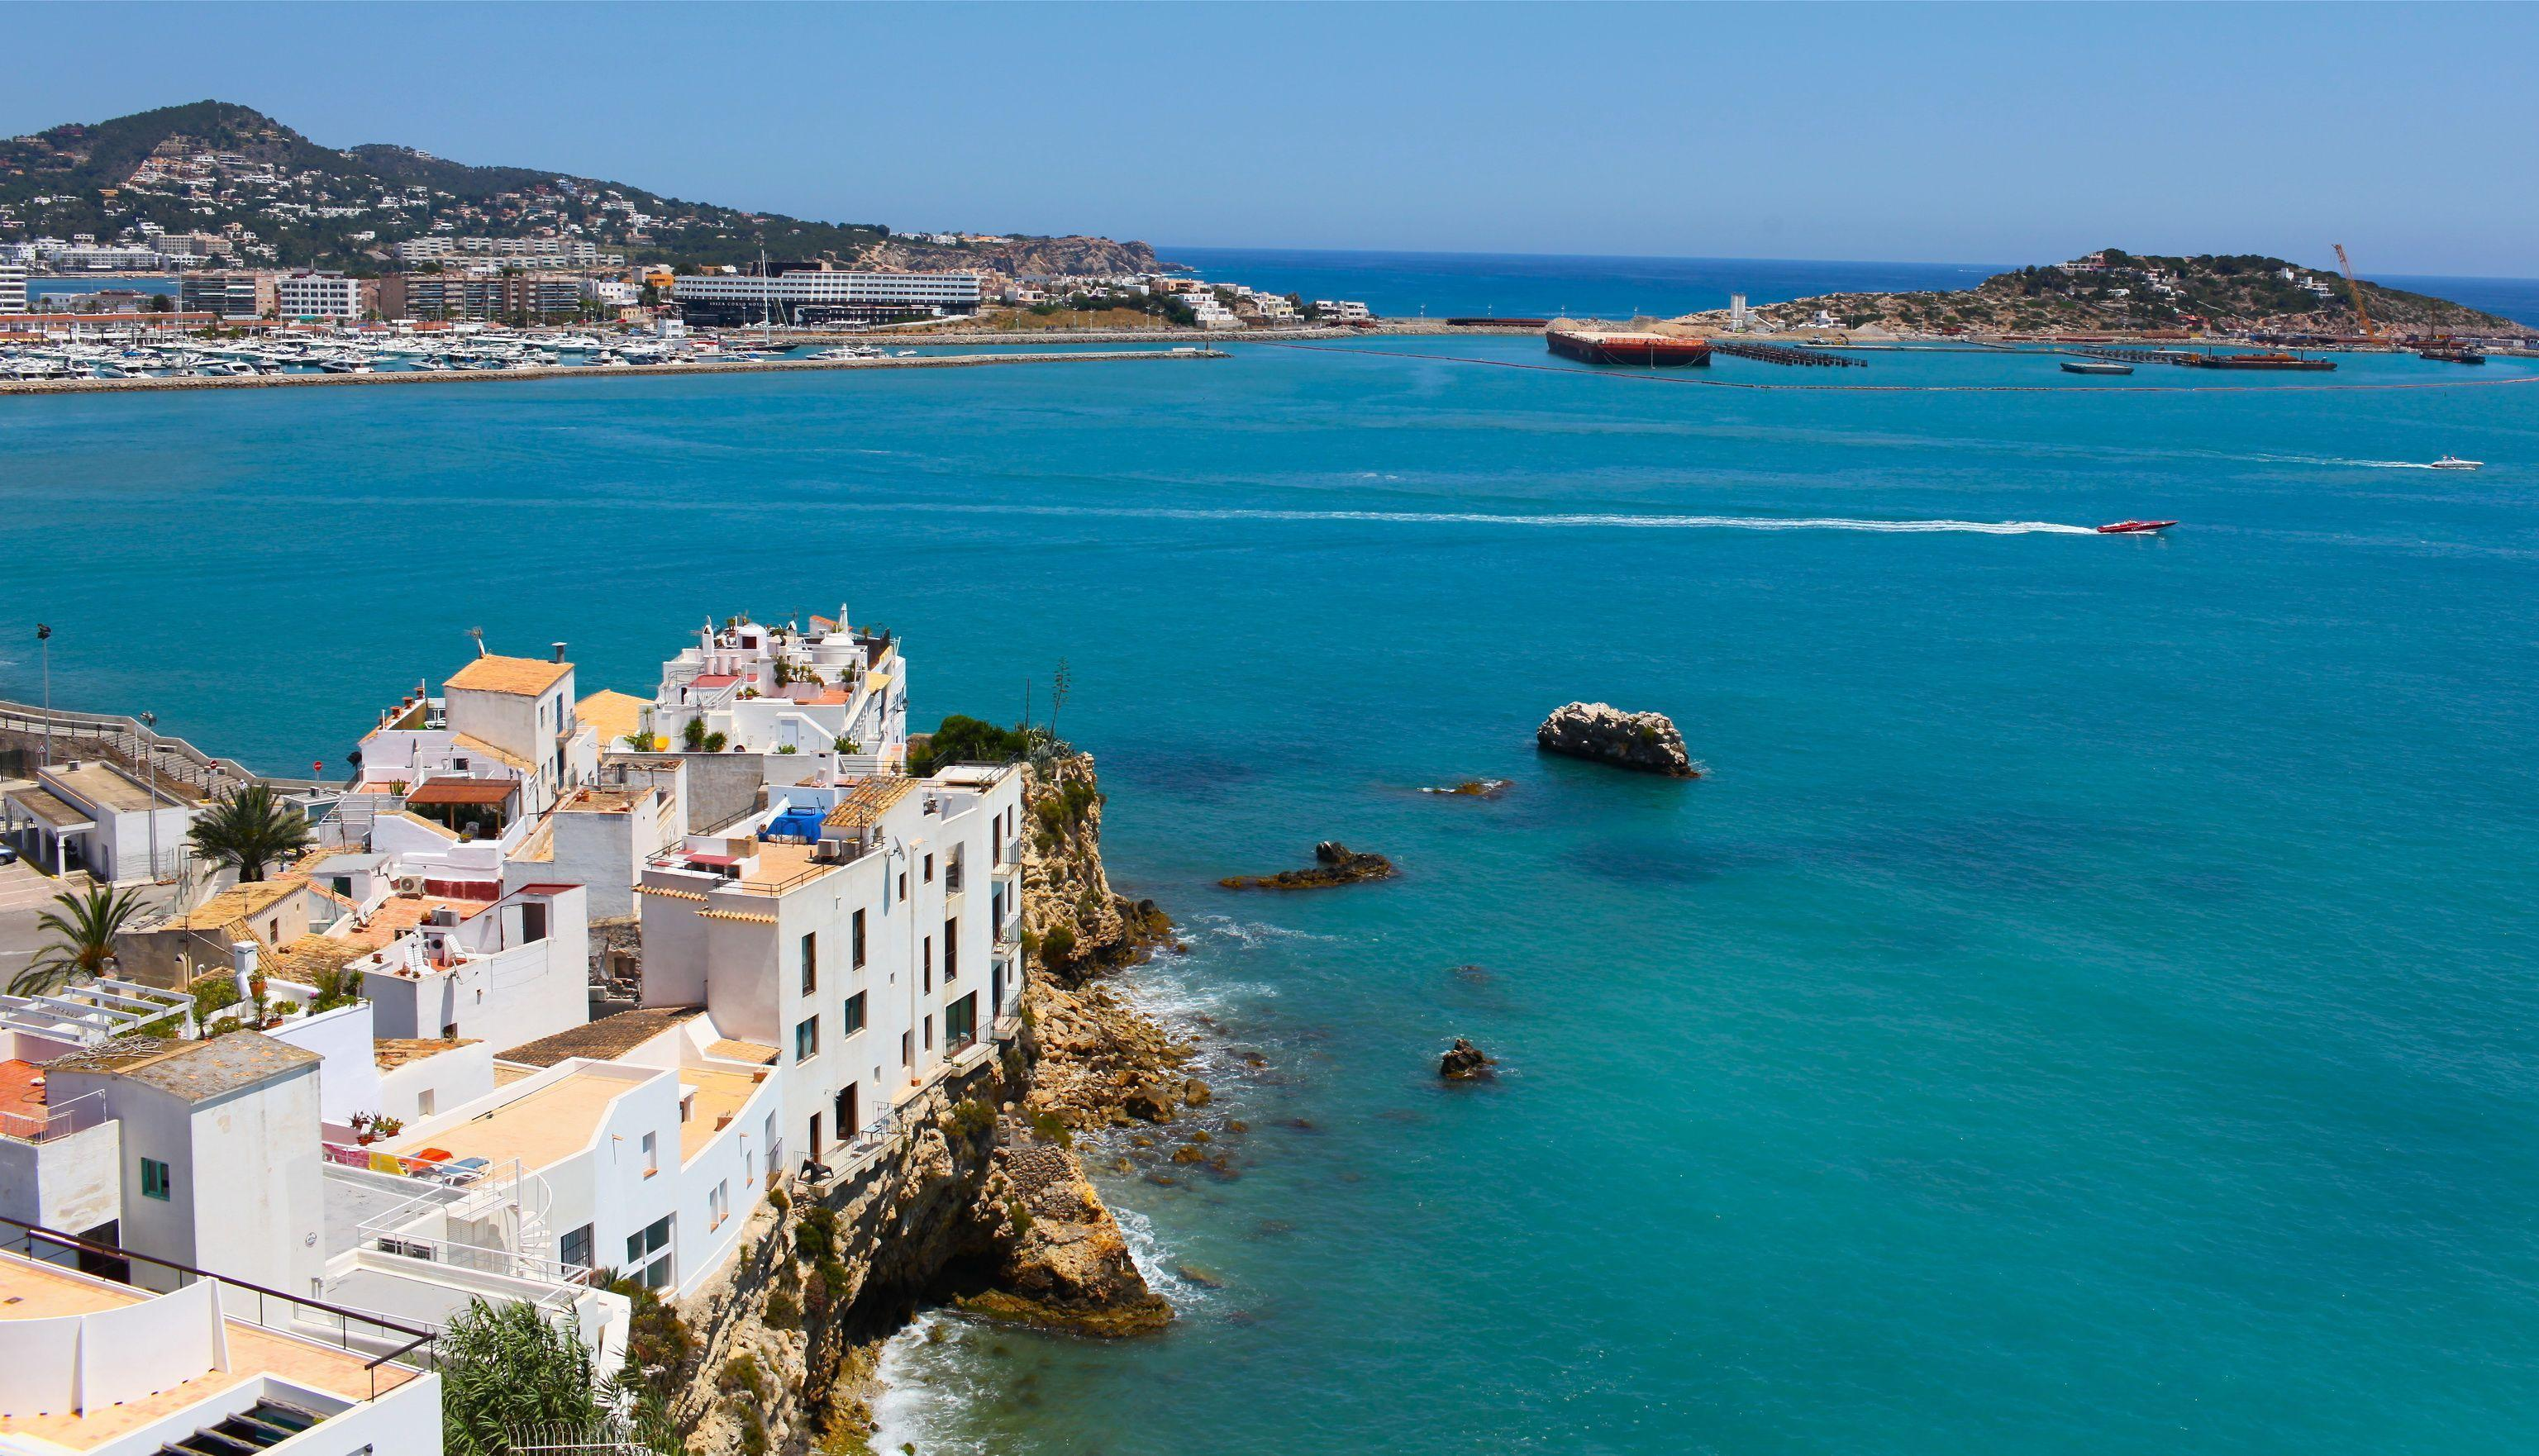 Ibiza Wallpapers, Ibiza HD Wallpapers, 0.28 Mb, Providencia Voegele